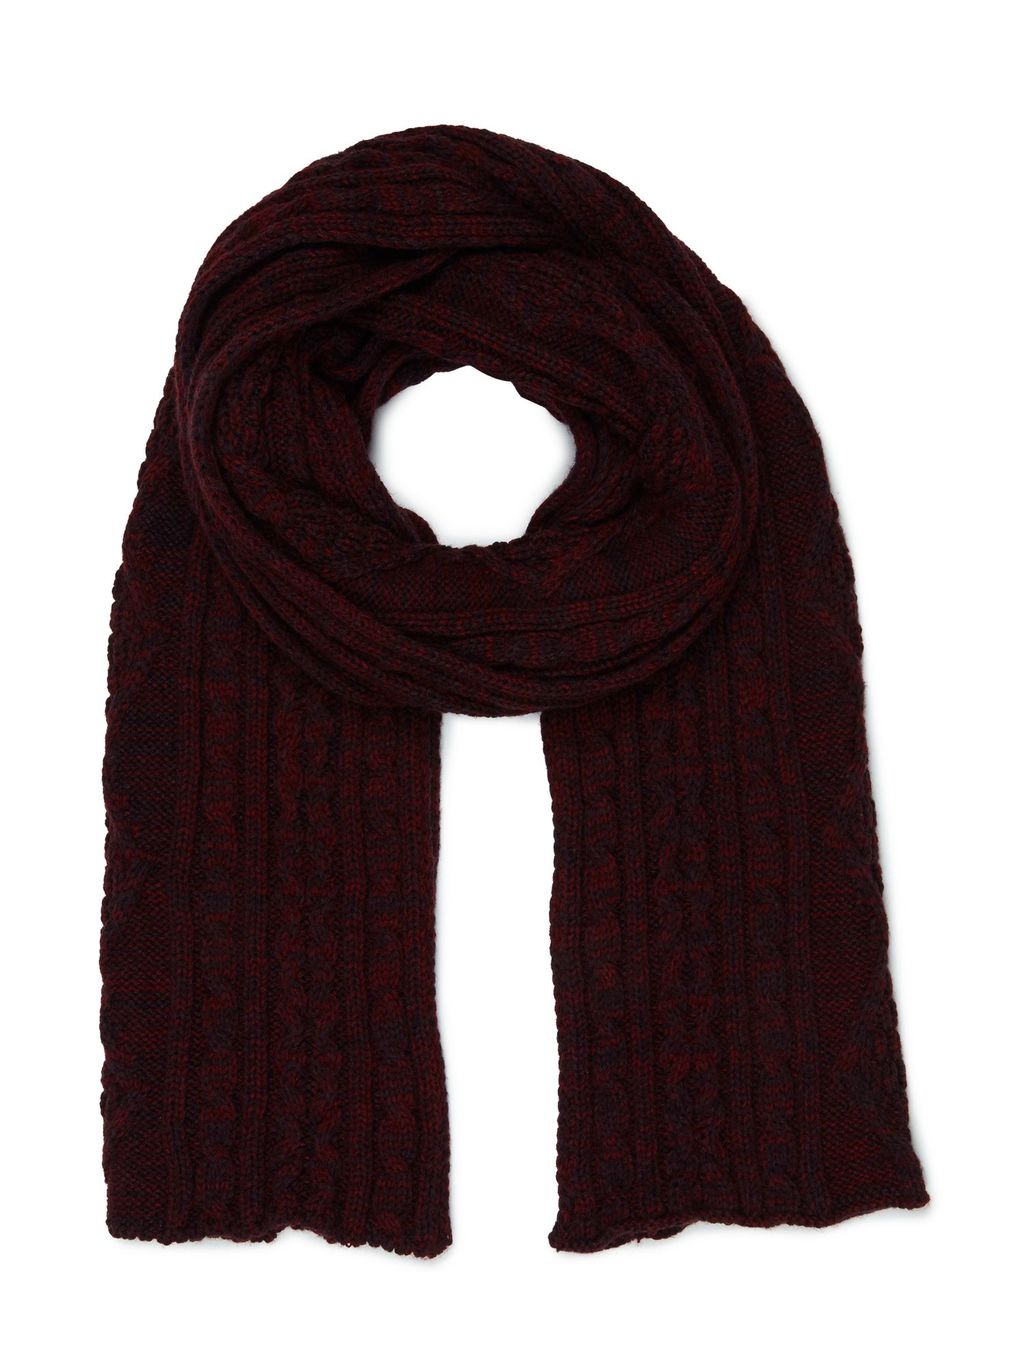 Cherry Cable Scarf, Red - predominant colour: aubergine; occasions: casual; type of pattern: standard; style: regular; size: standard; material: knits; pattern: plain; season: a/w 2016; wardrobe: highlight